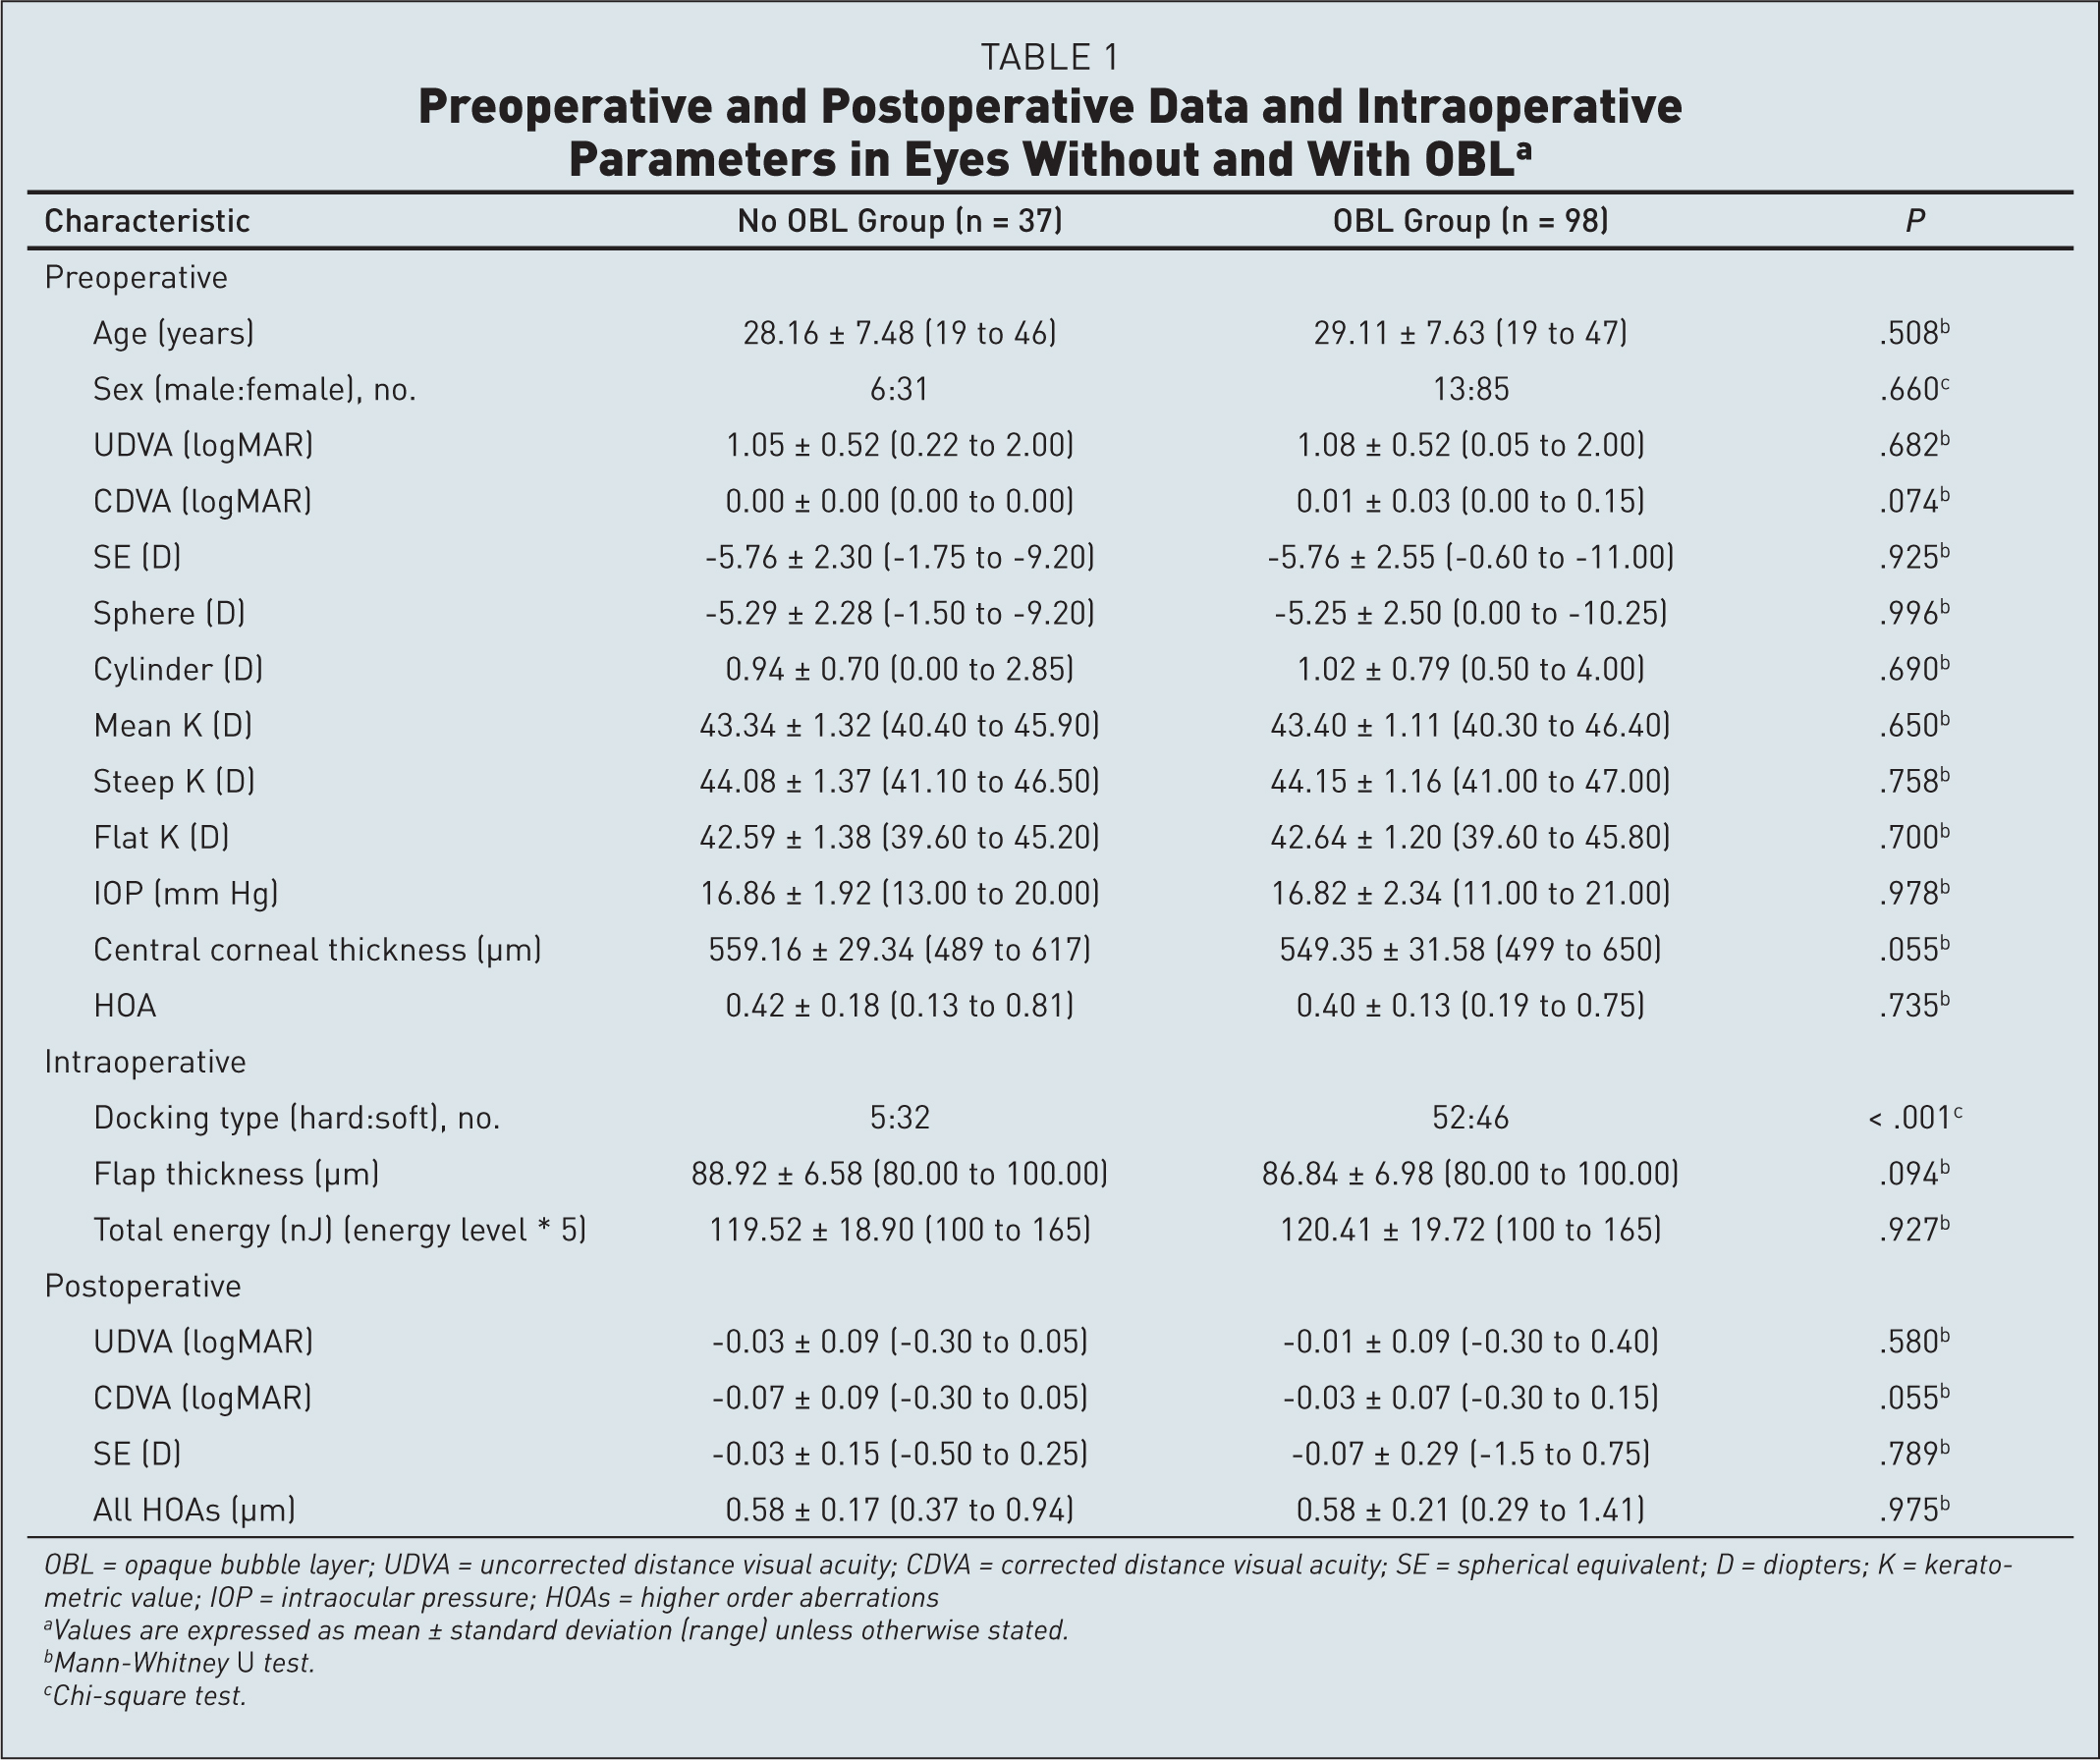 Preoperative and Postoperative Data and Intraoperative Parameters in Eyes Without and With OBLa